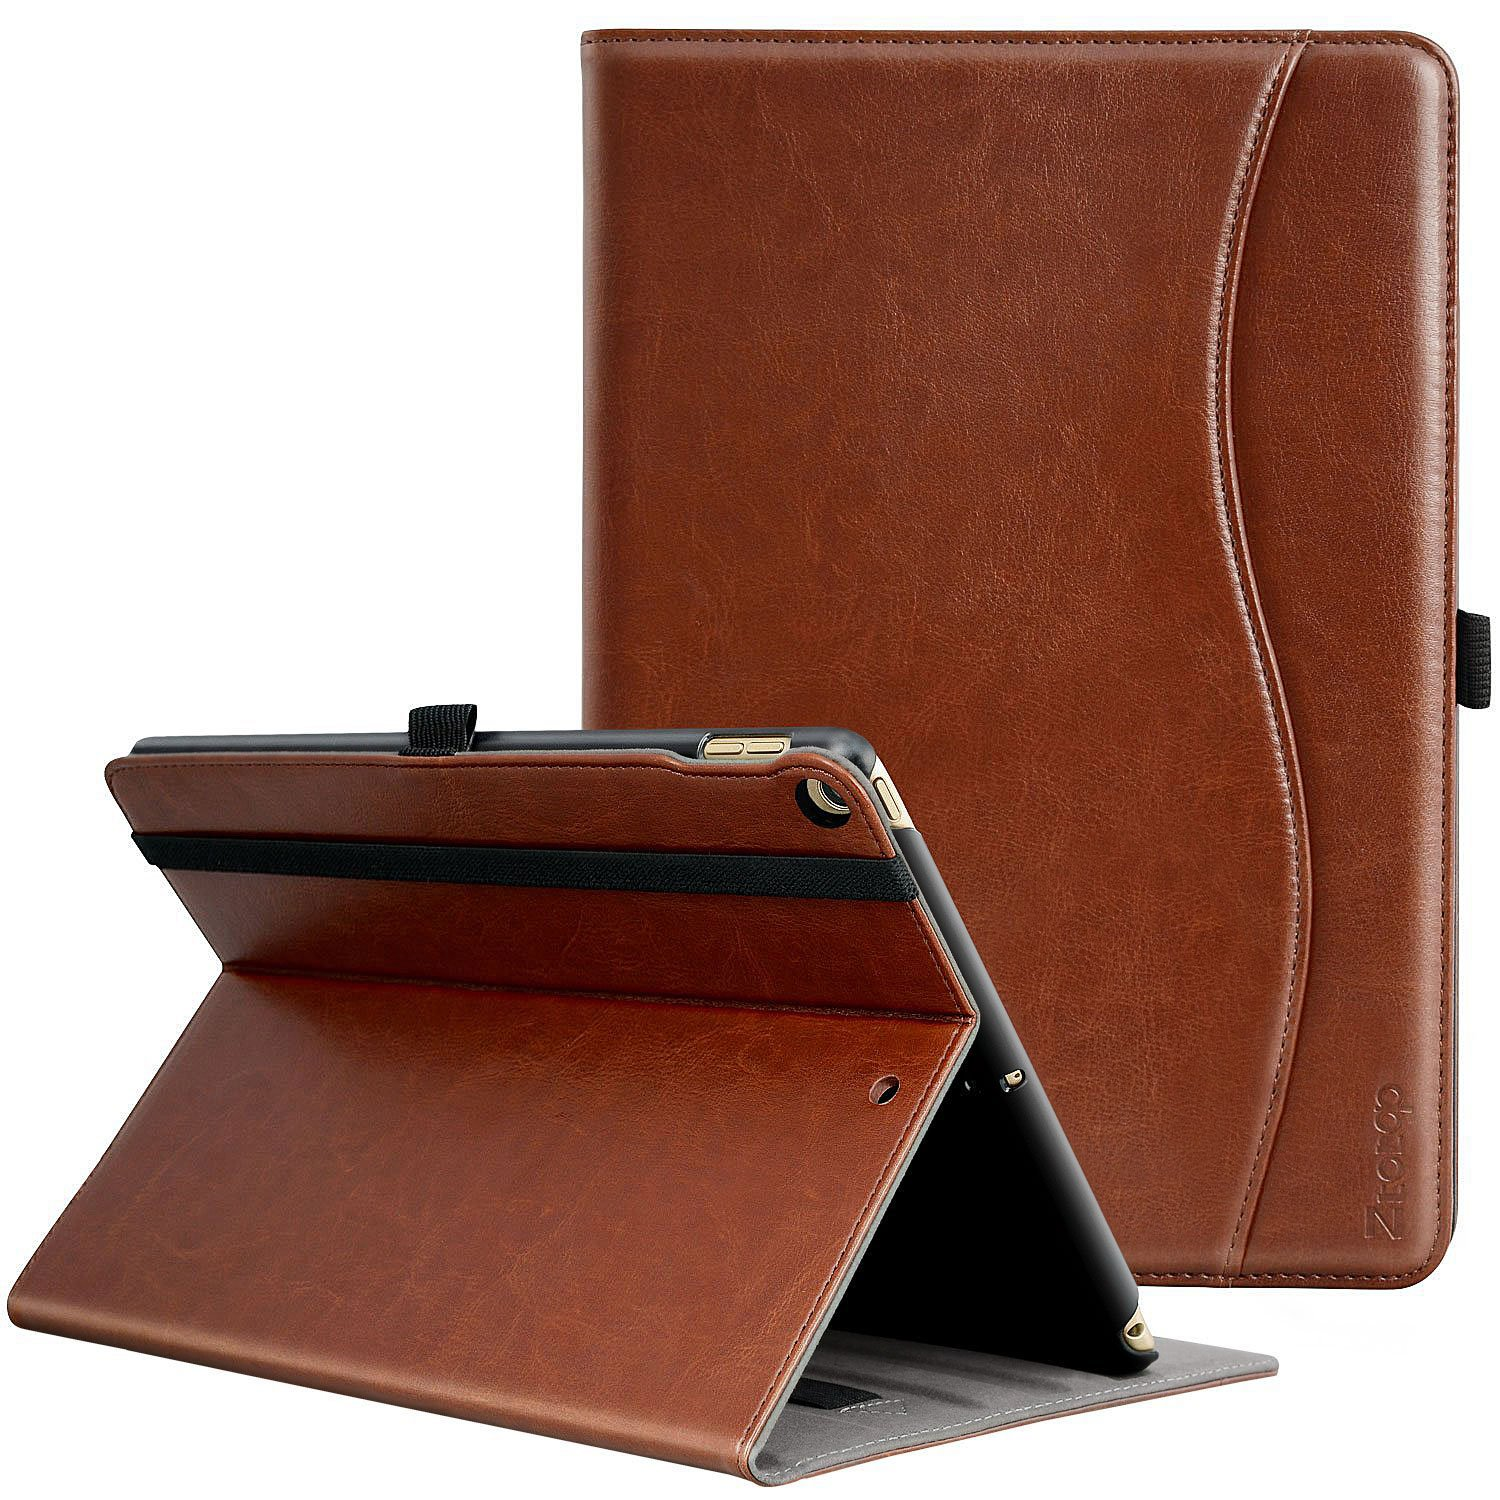 New IPad 9.7 Inch 2018/2017 Case, Ztotop Premium Leather Business Slim Folding Stand Folio Cover with Auto Wake/Sleep,Pencil Holder and Multiple Viewing Angles, Brown by Ztotop